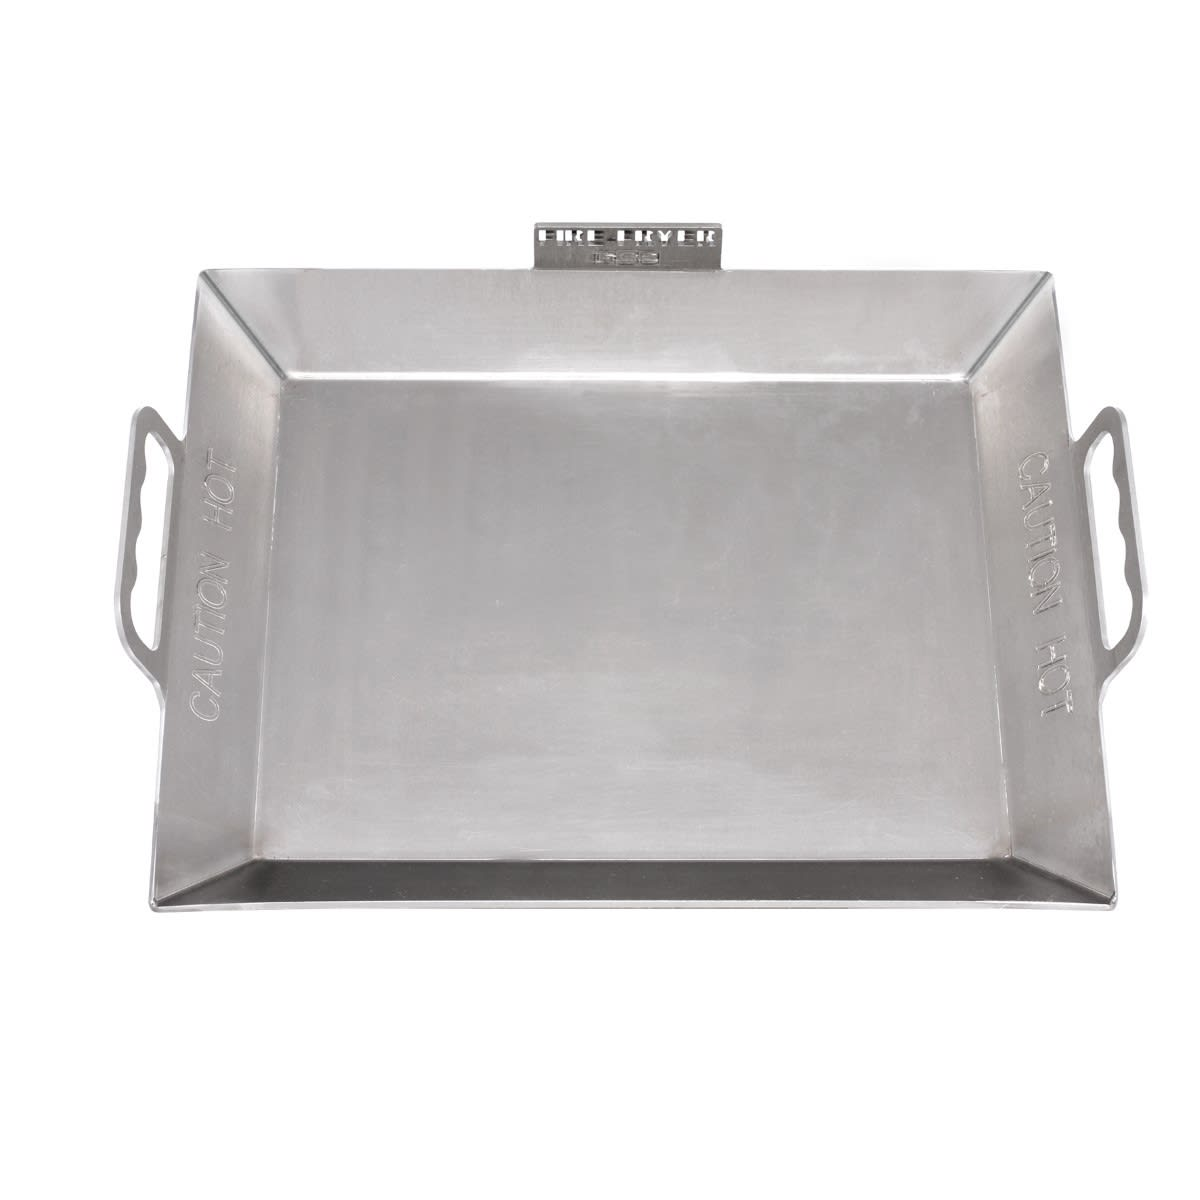 Fire Fryer Stainless Steel Braai Pan